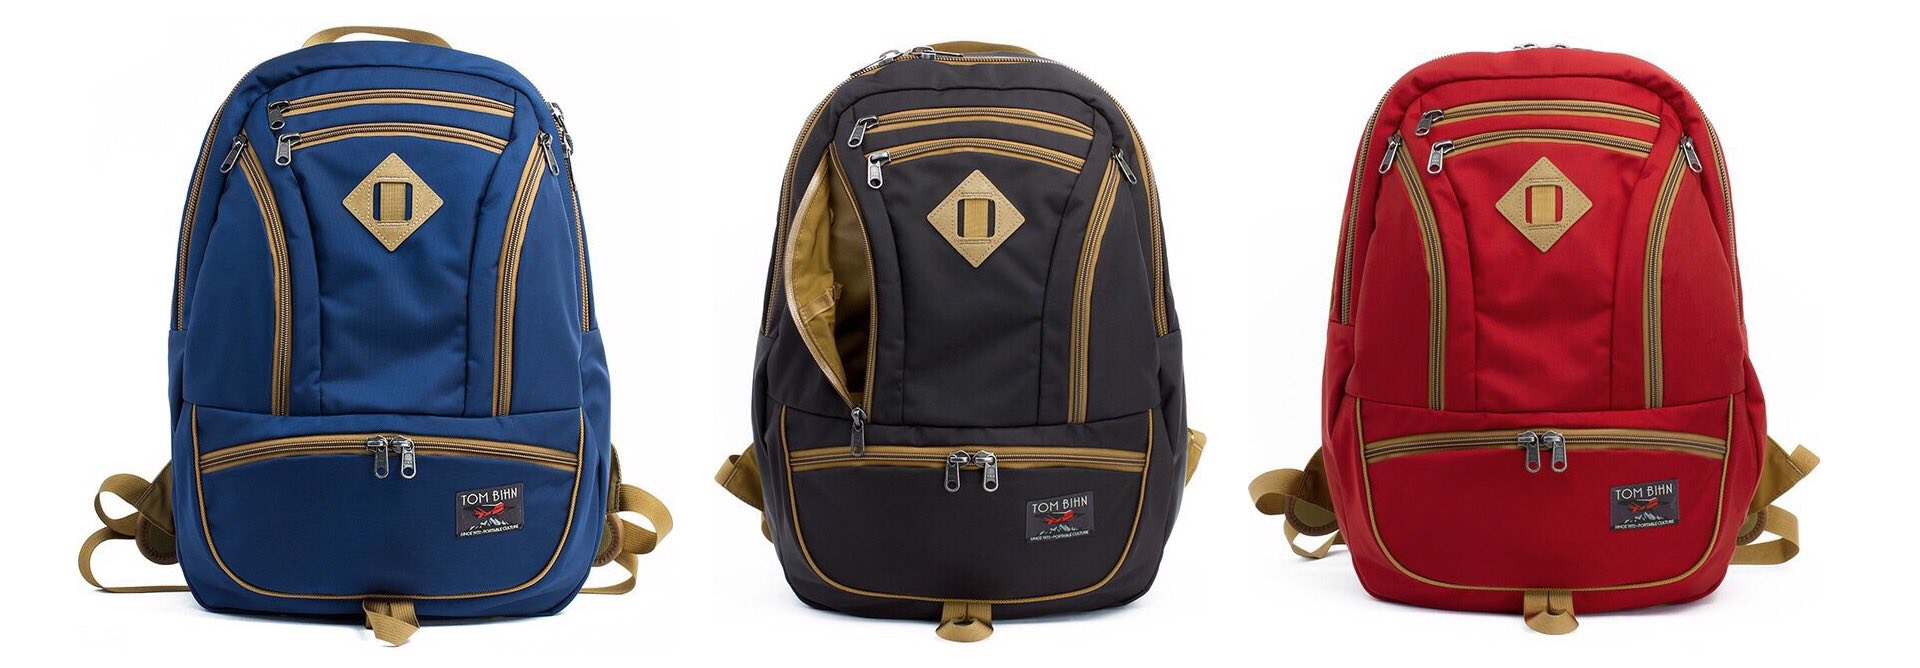 "Tom Bihn ""Guide's Edition Synapse 25 backpack. ($240)"